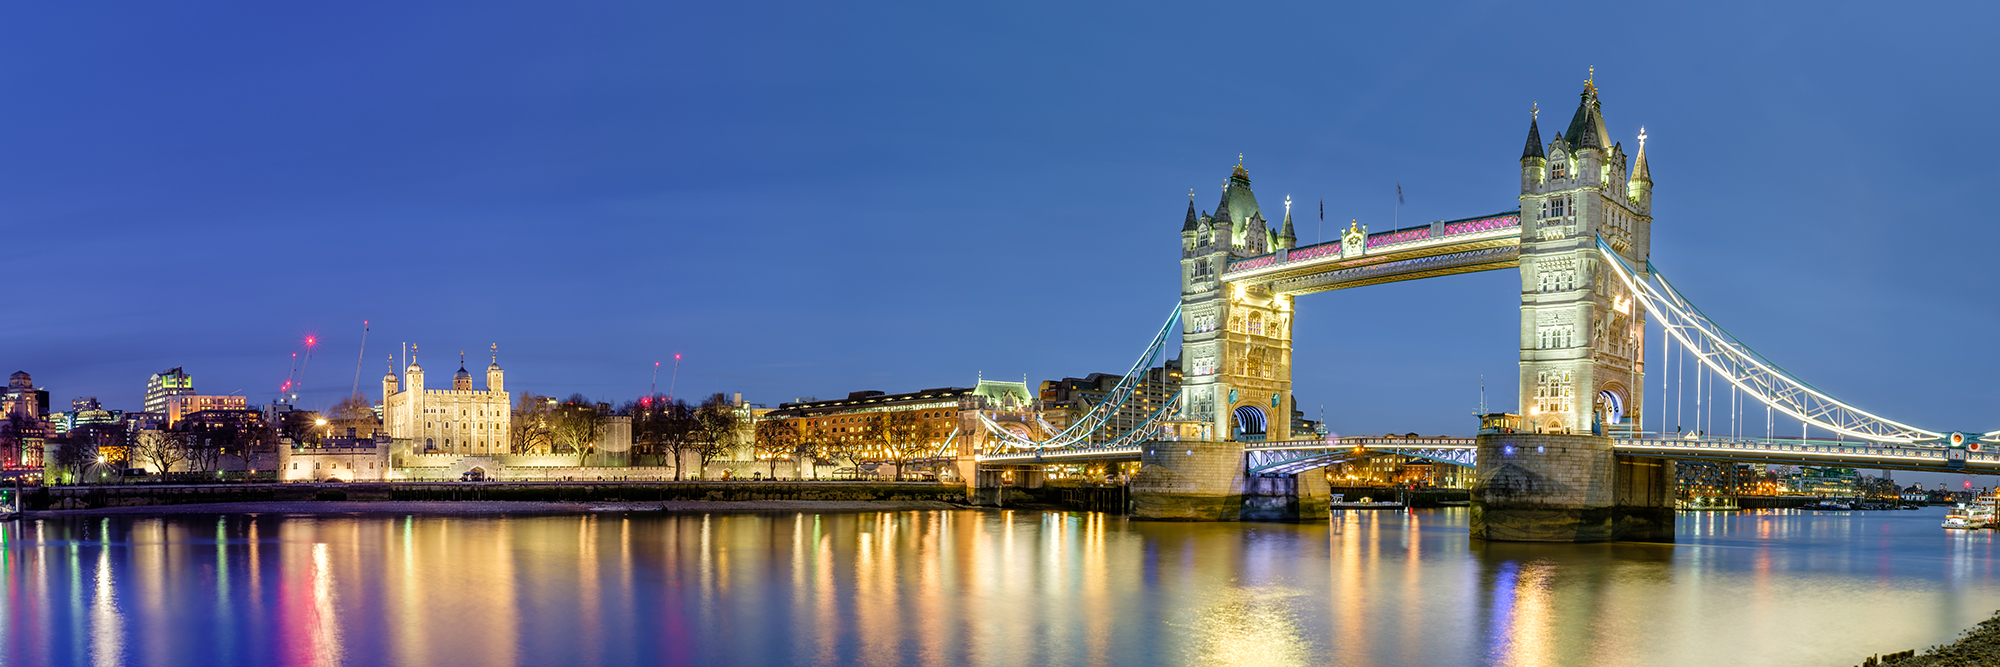 A London Panoramic at Blue Hour II - Tower Bridge and The Tower of London by Trevor Sherwin